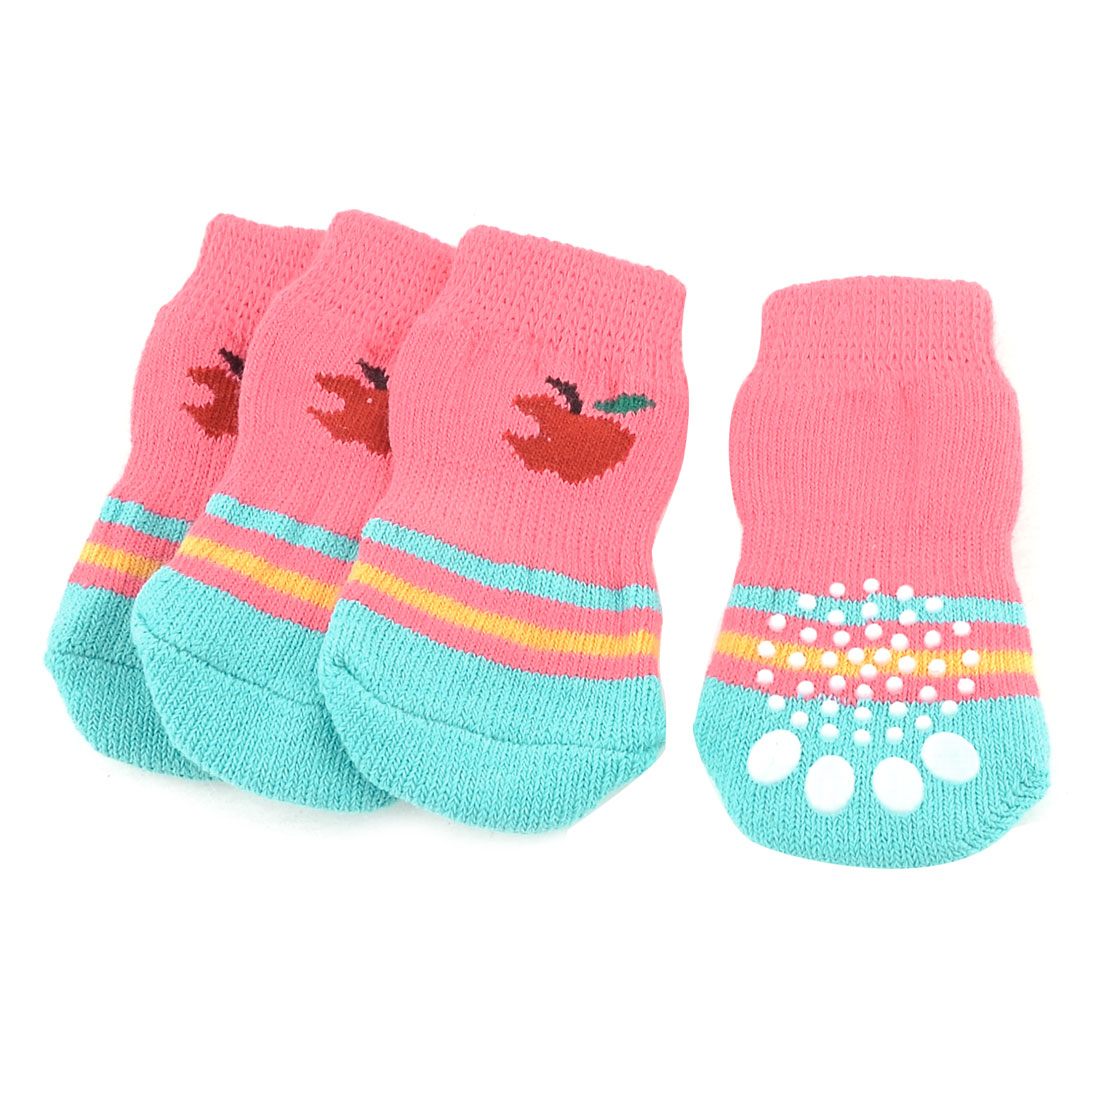 2 Pairs Fuchsia Cyan Knitting Apple Paw Pattern Elastic Cuff Pet Doggie Dog Socks